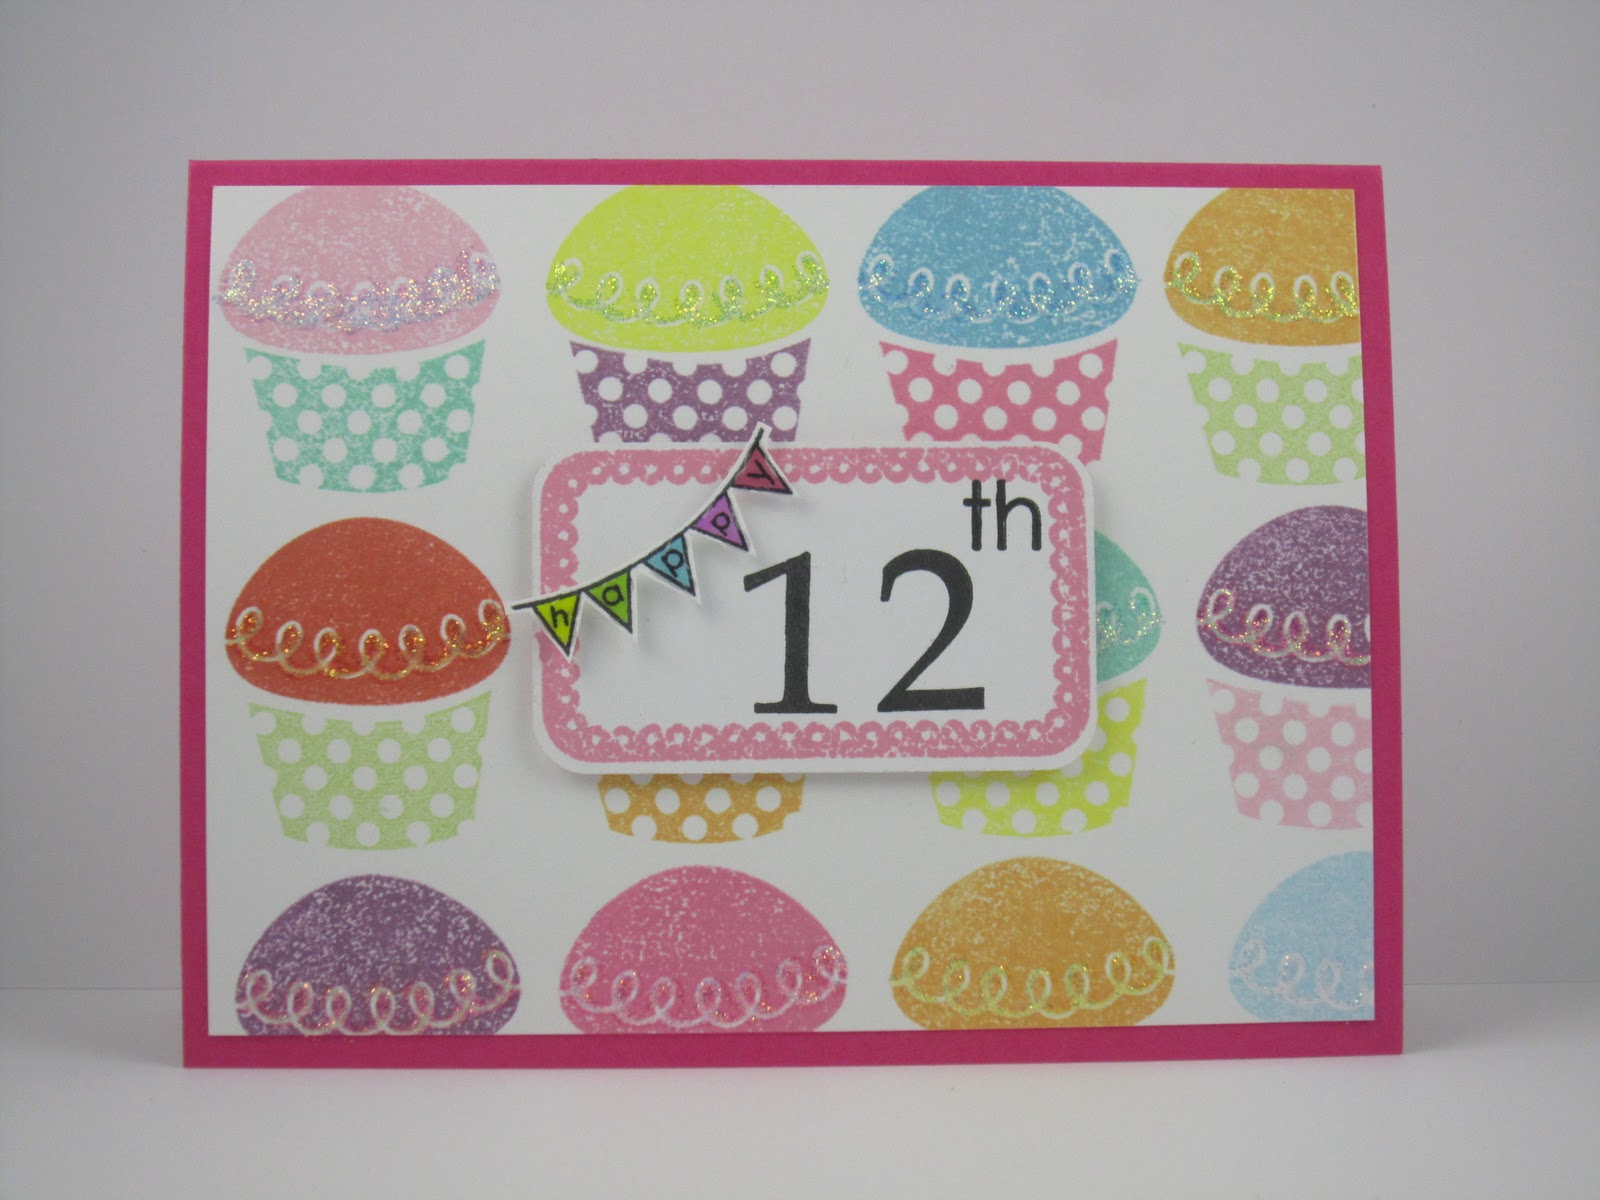 Infinite possibilities happy 12th birthday i was in the mood to create my own background and used a cupcake stamp from pti with all the vibrant ink colours i could find in my drawer m4hsunfo